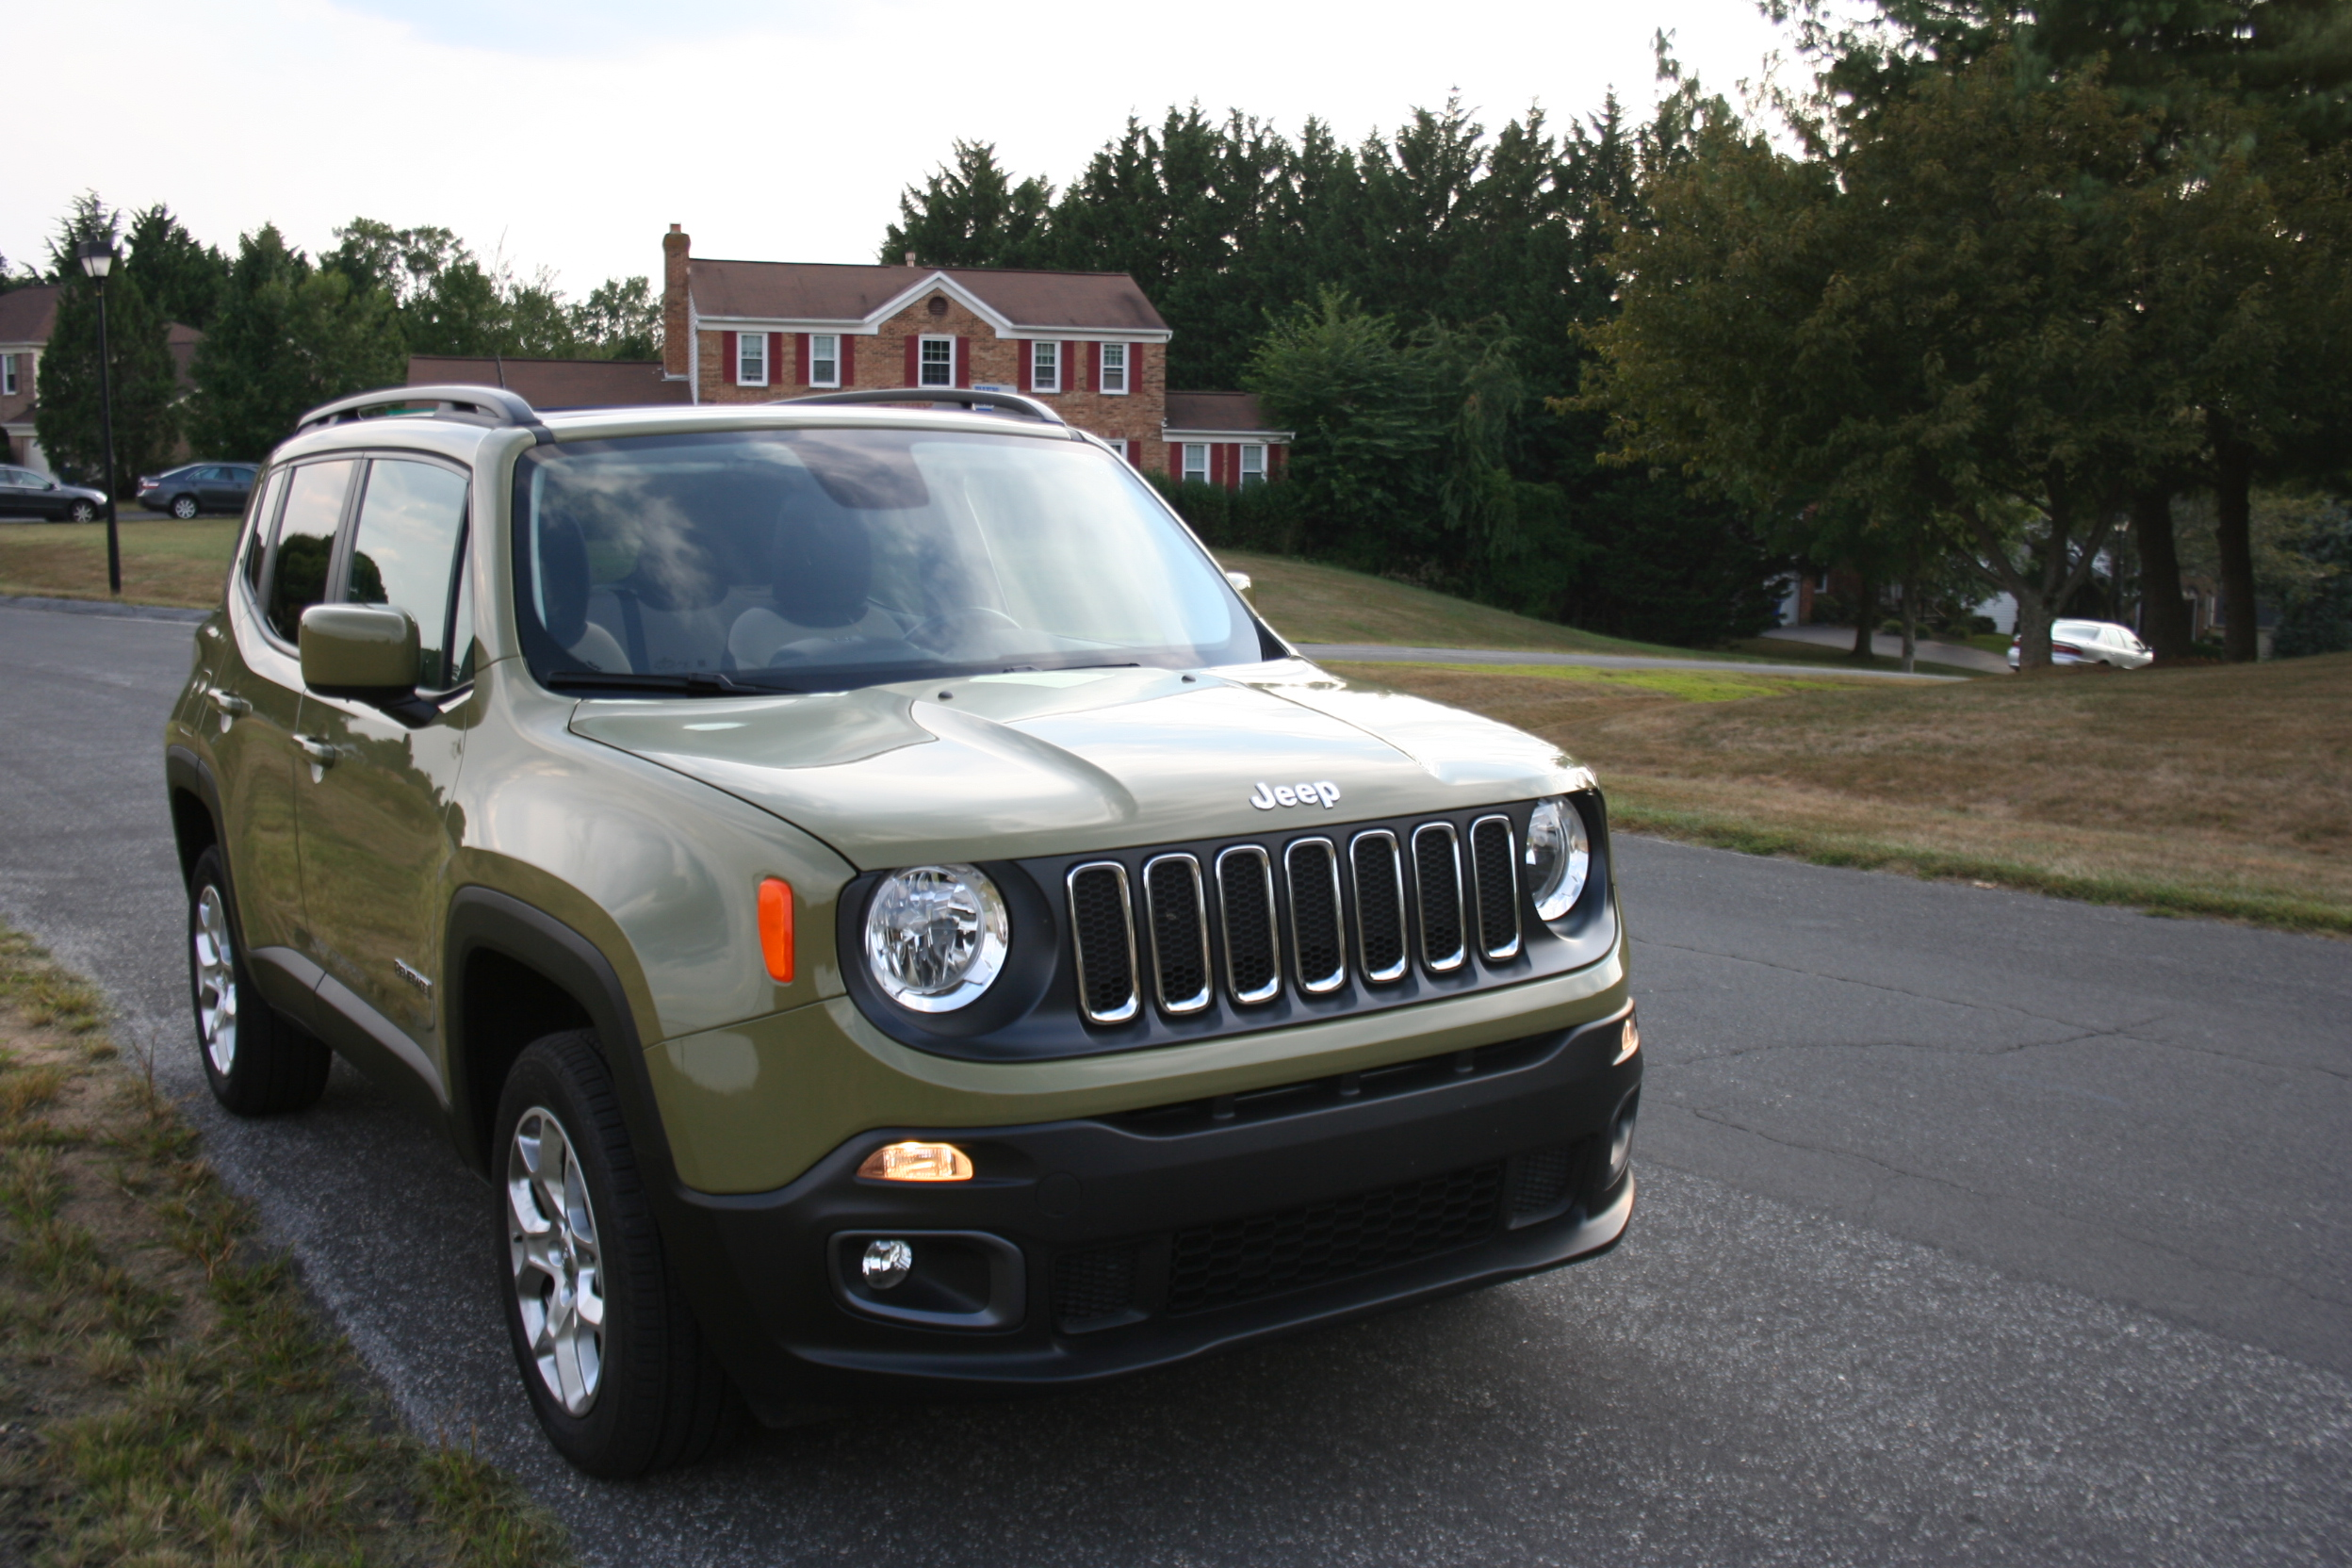 2015 Jeep Renegade: The not-so-cute subcompact crossover